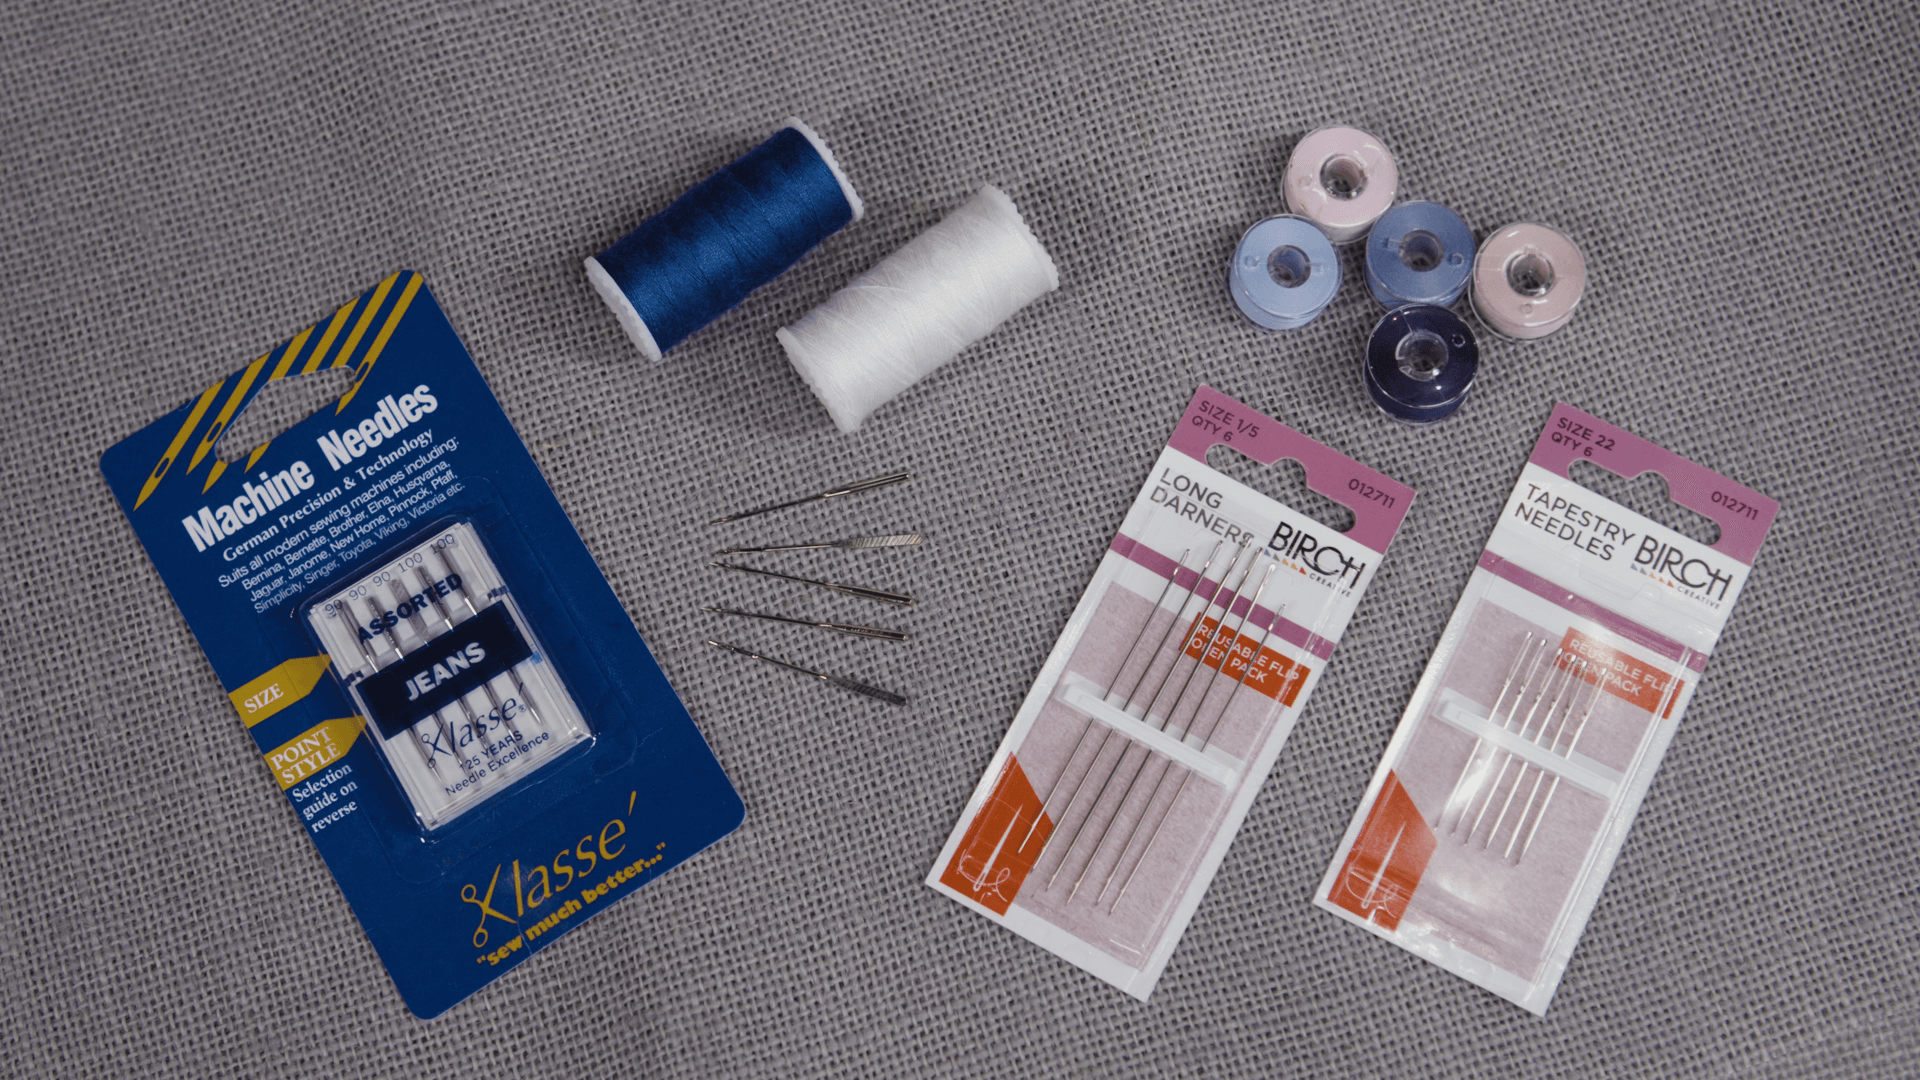 Sewing Needles Buying Guide